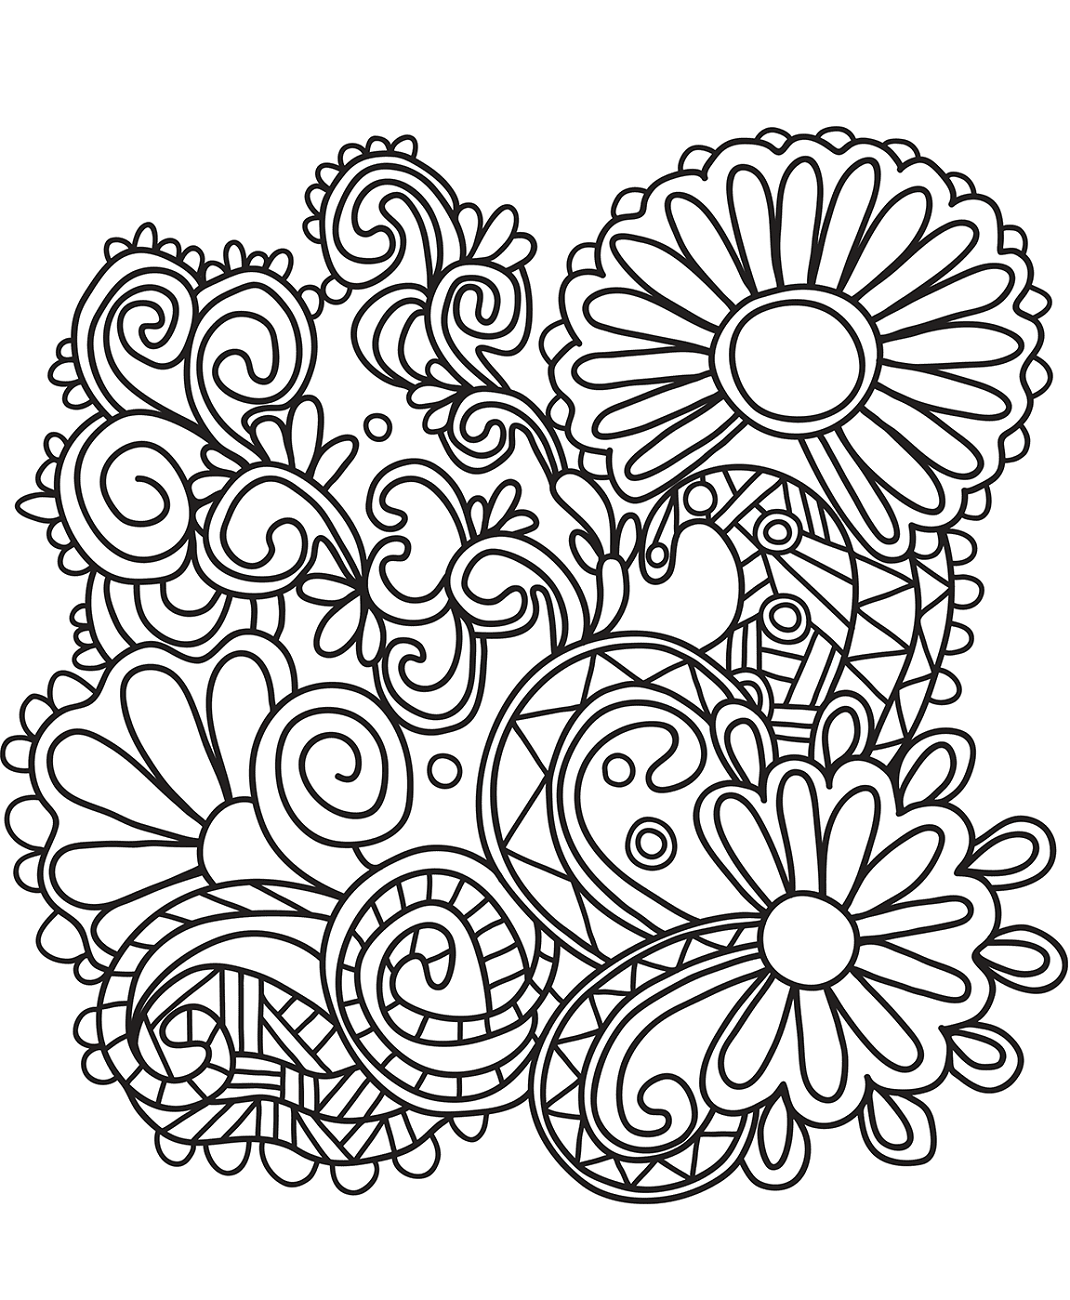 Sunflowers Doodle Art Coloring Page